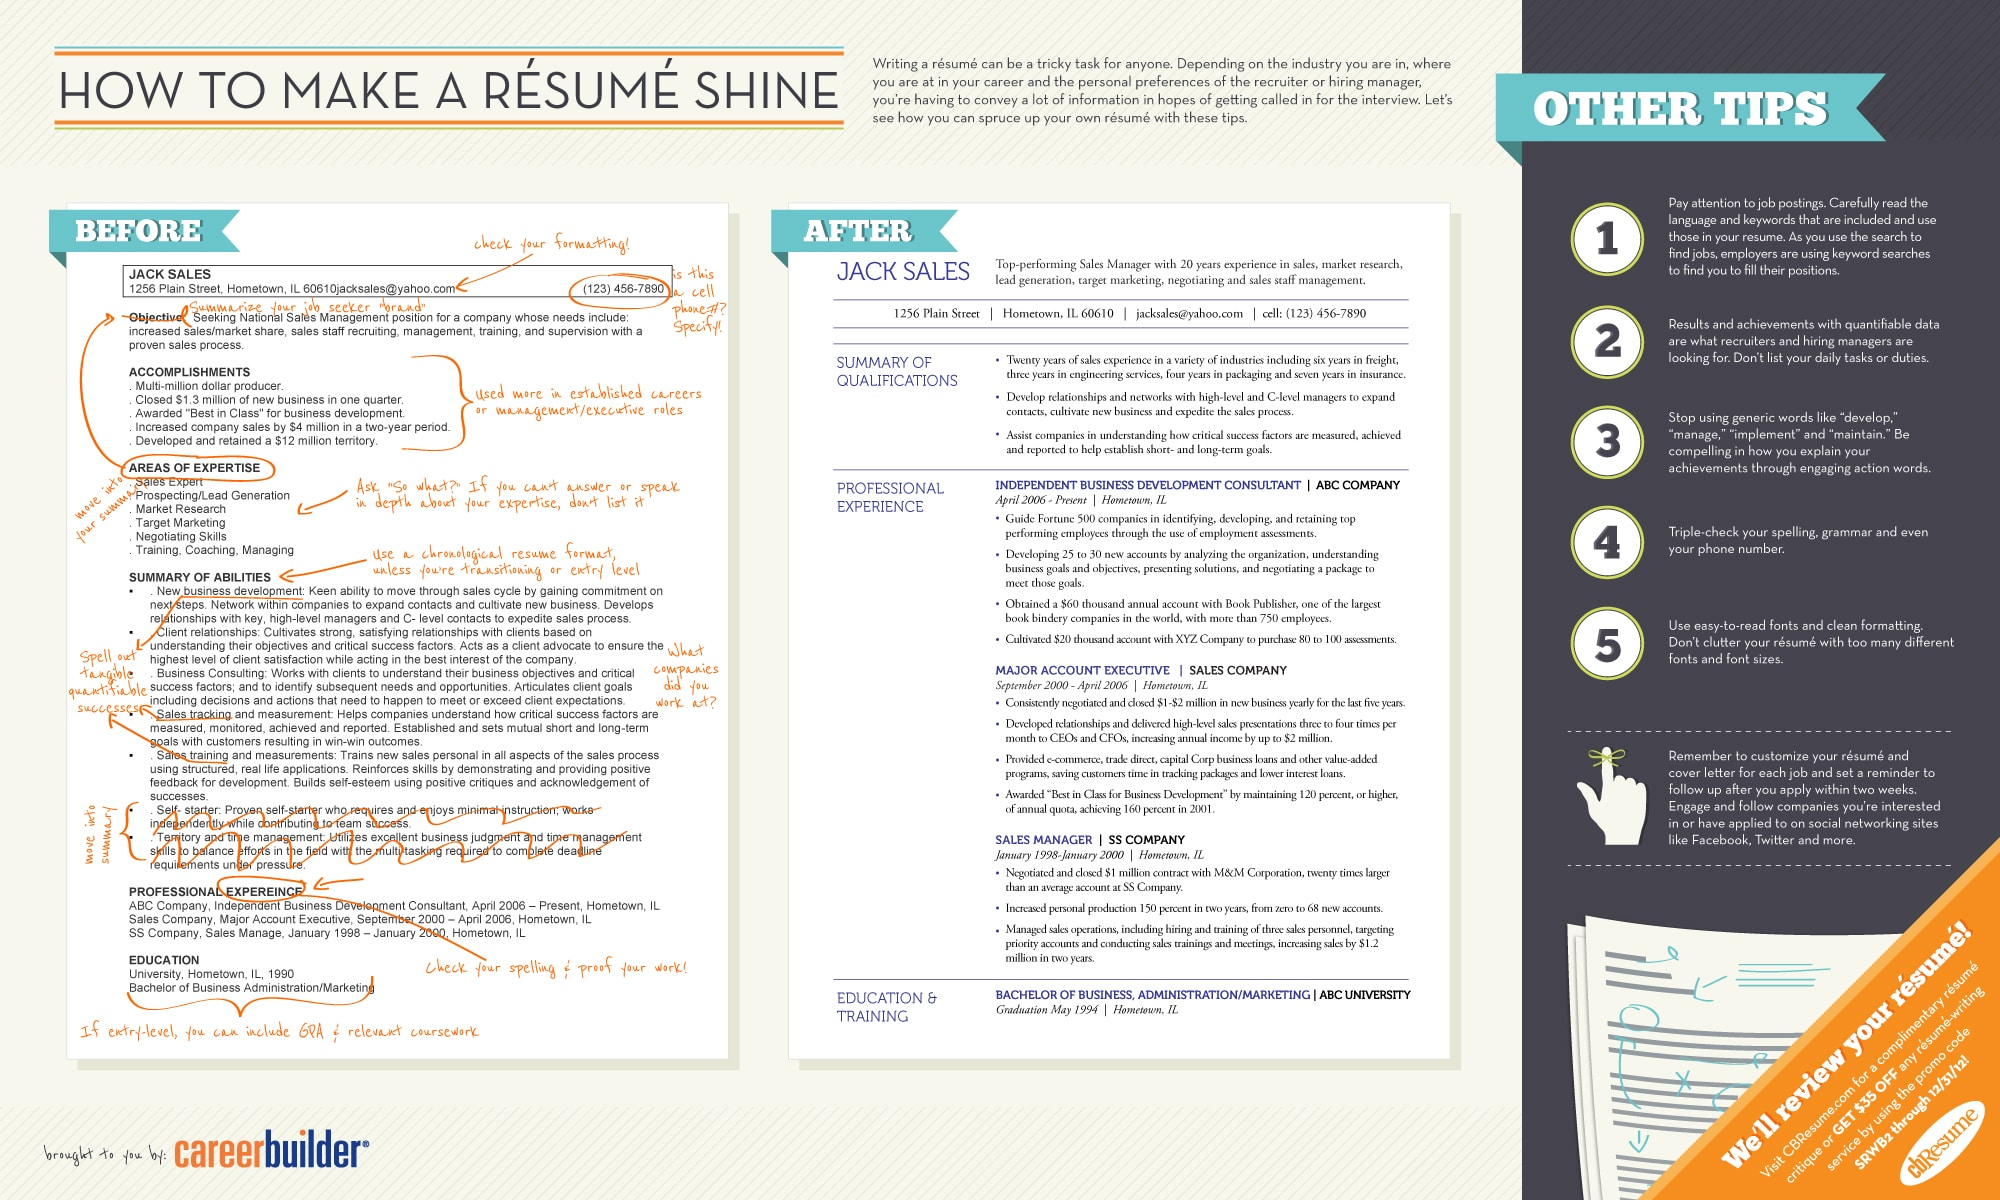 resume-tips-for-better-reading